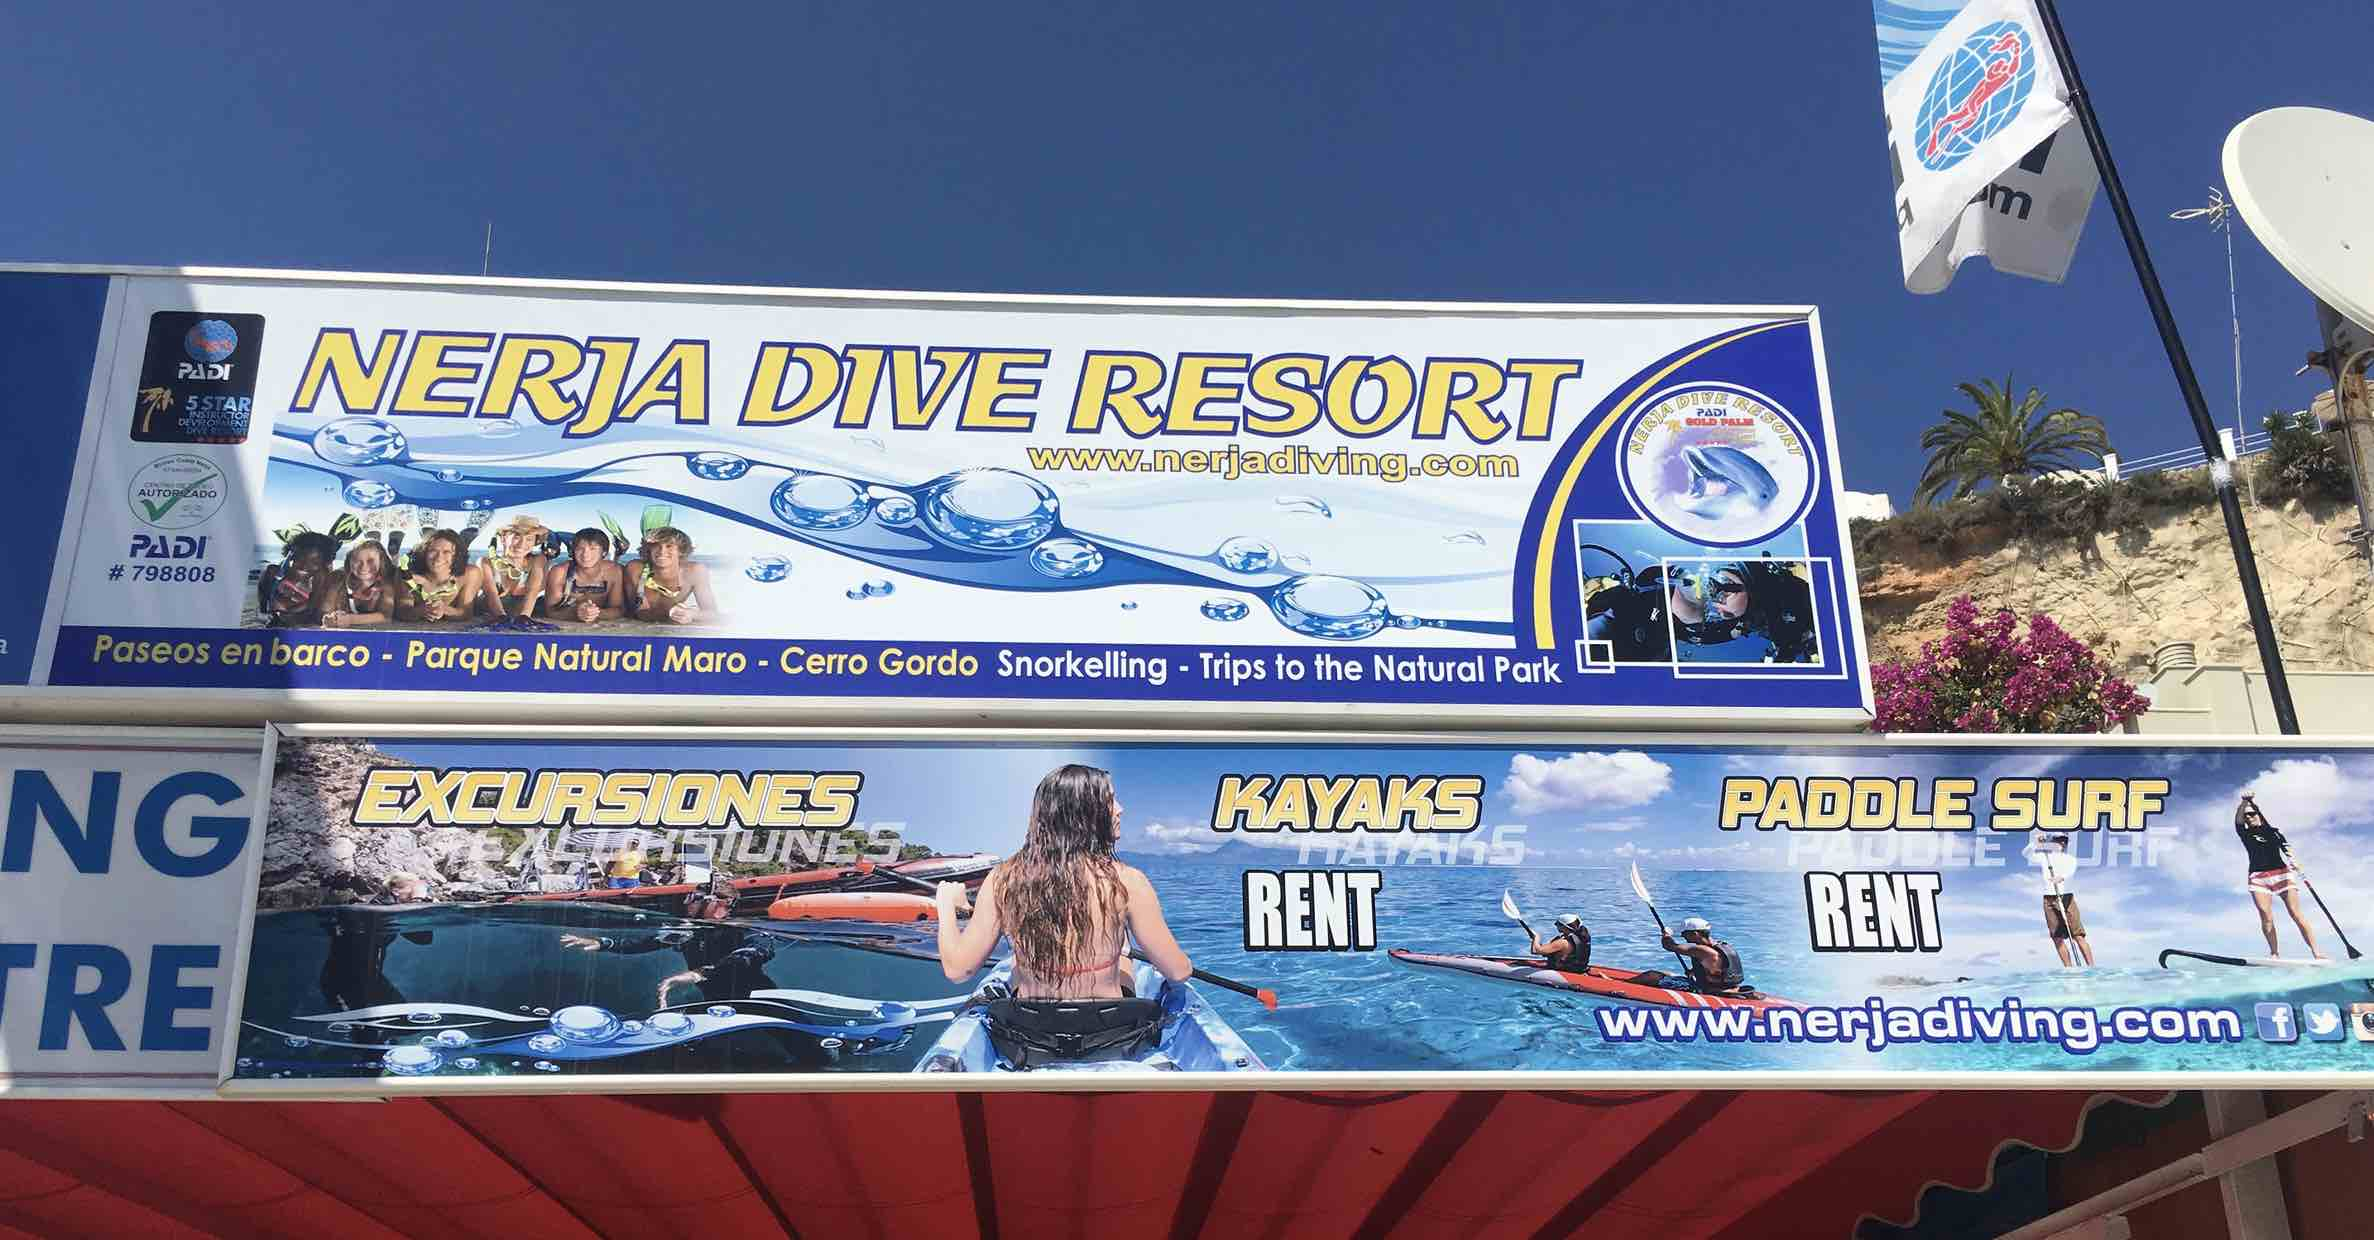 Nerja Dive Resort